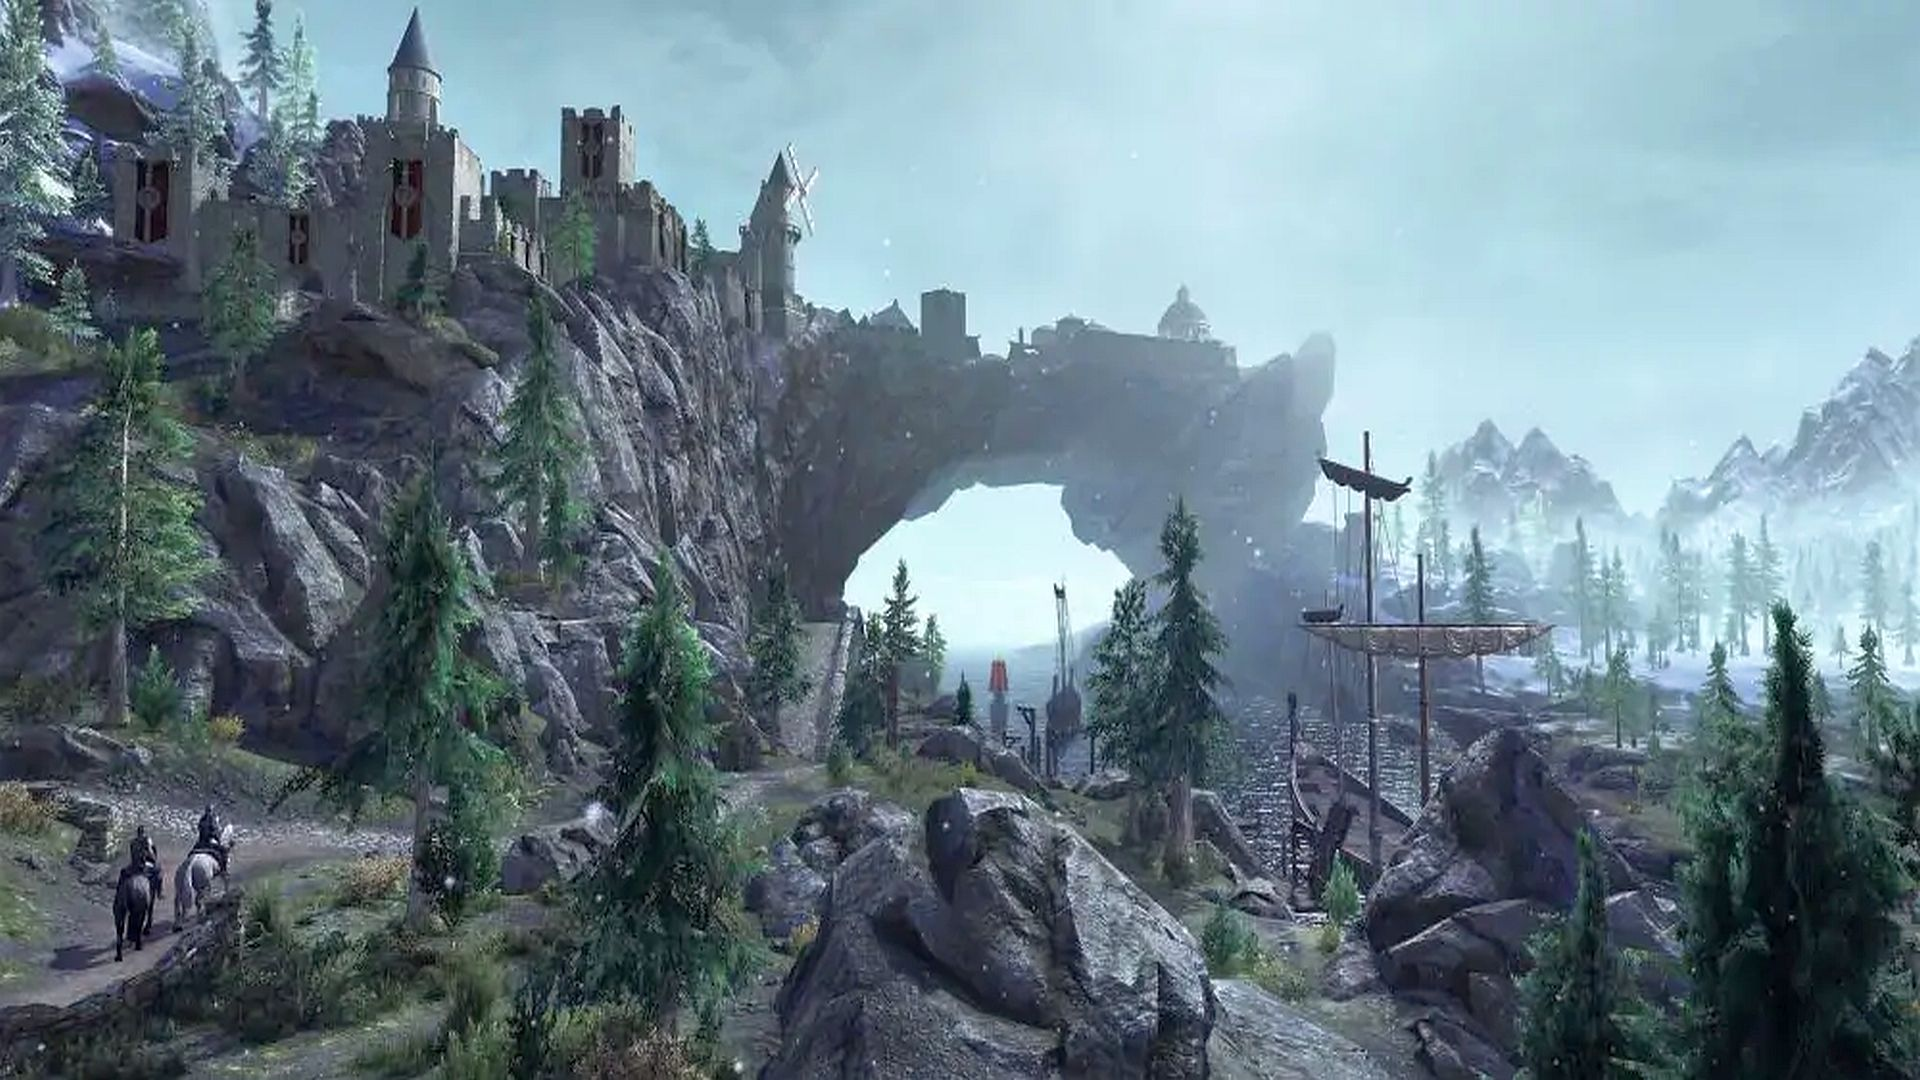 A Skyrim fan has recreated Solitude in Far Cry 5 and it's gorgeous